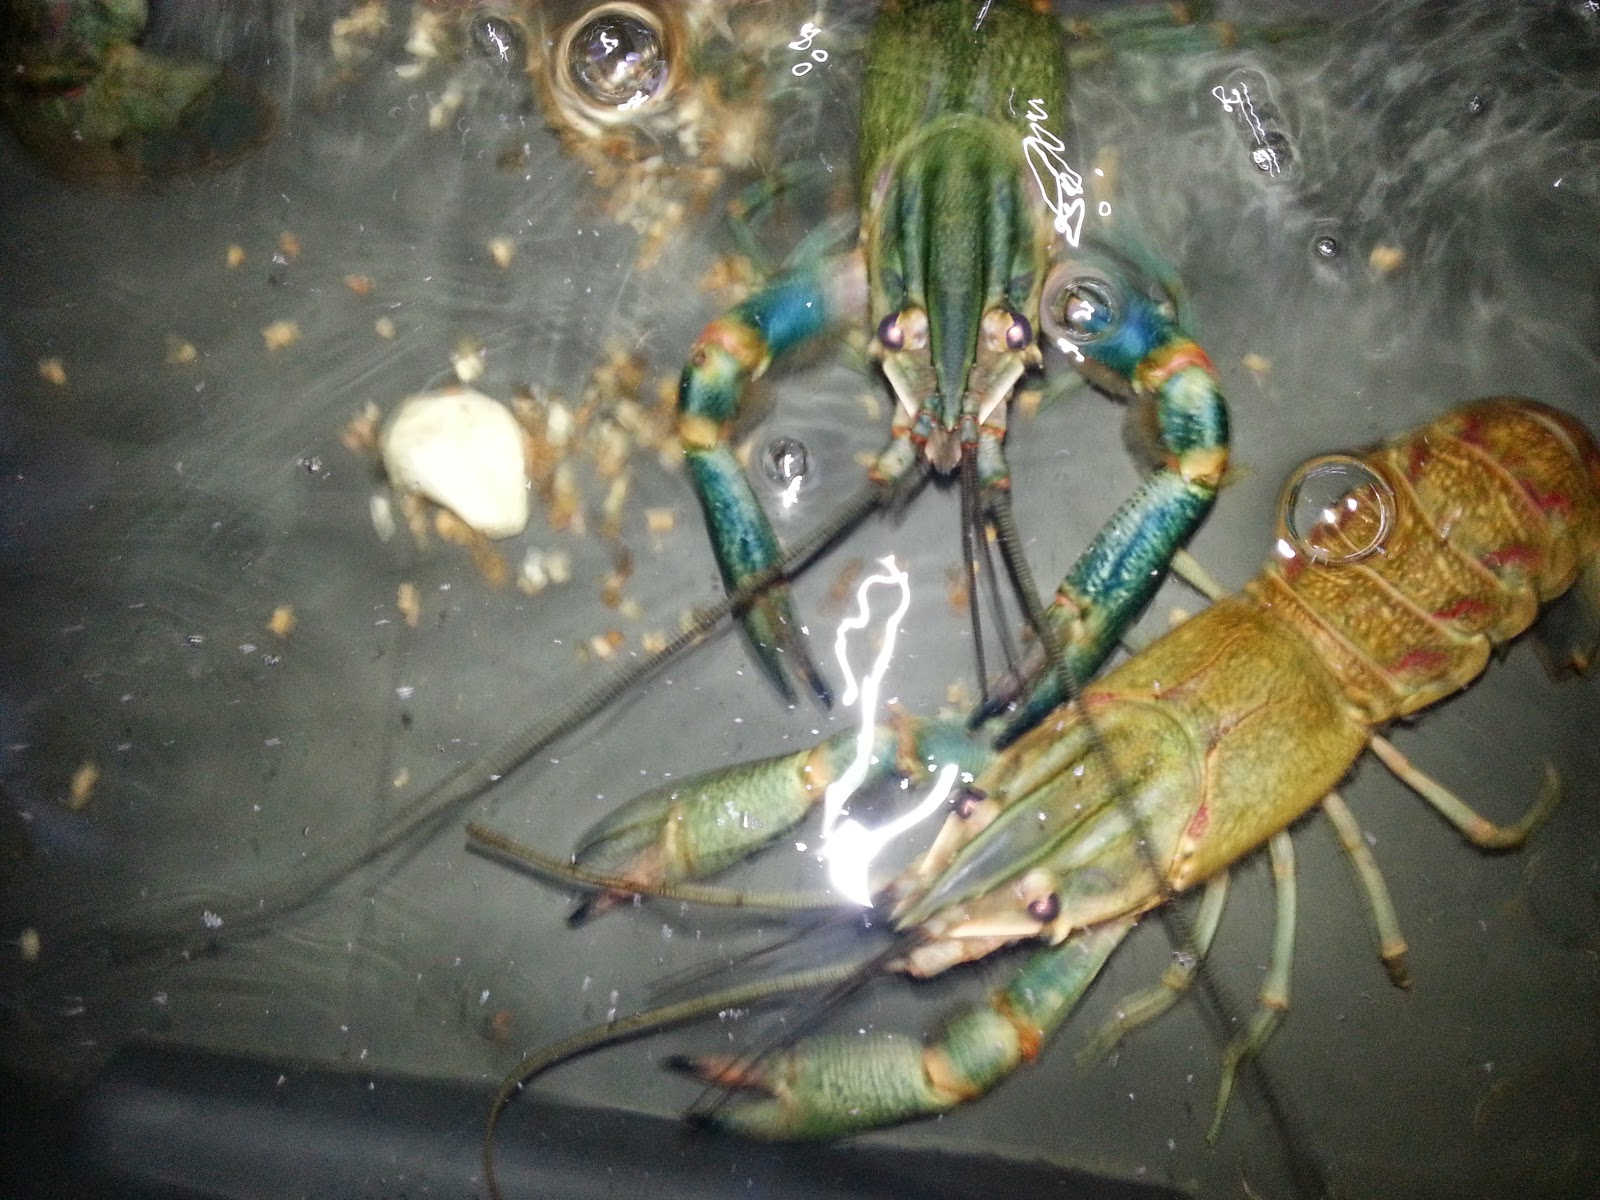 How to breed crayfish at home 37